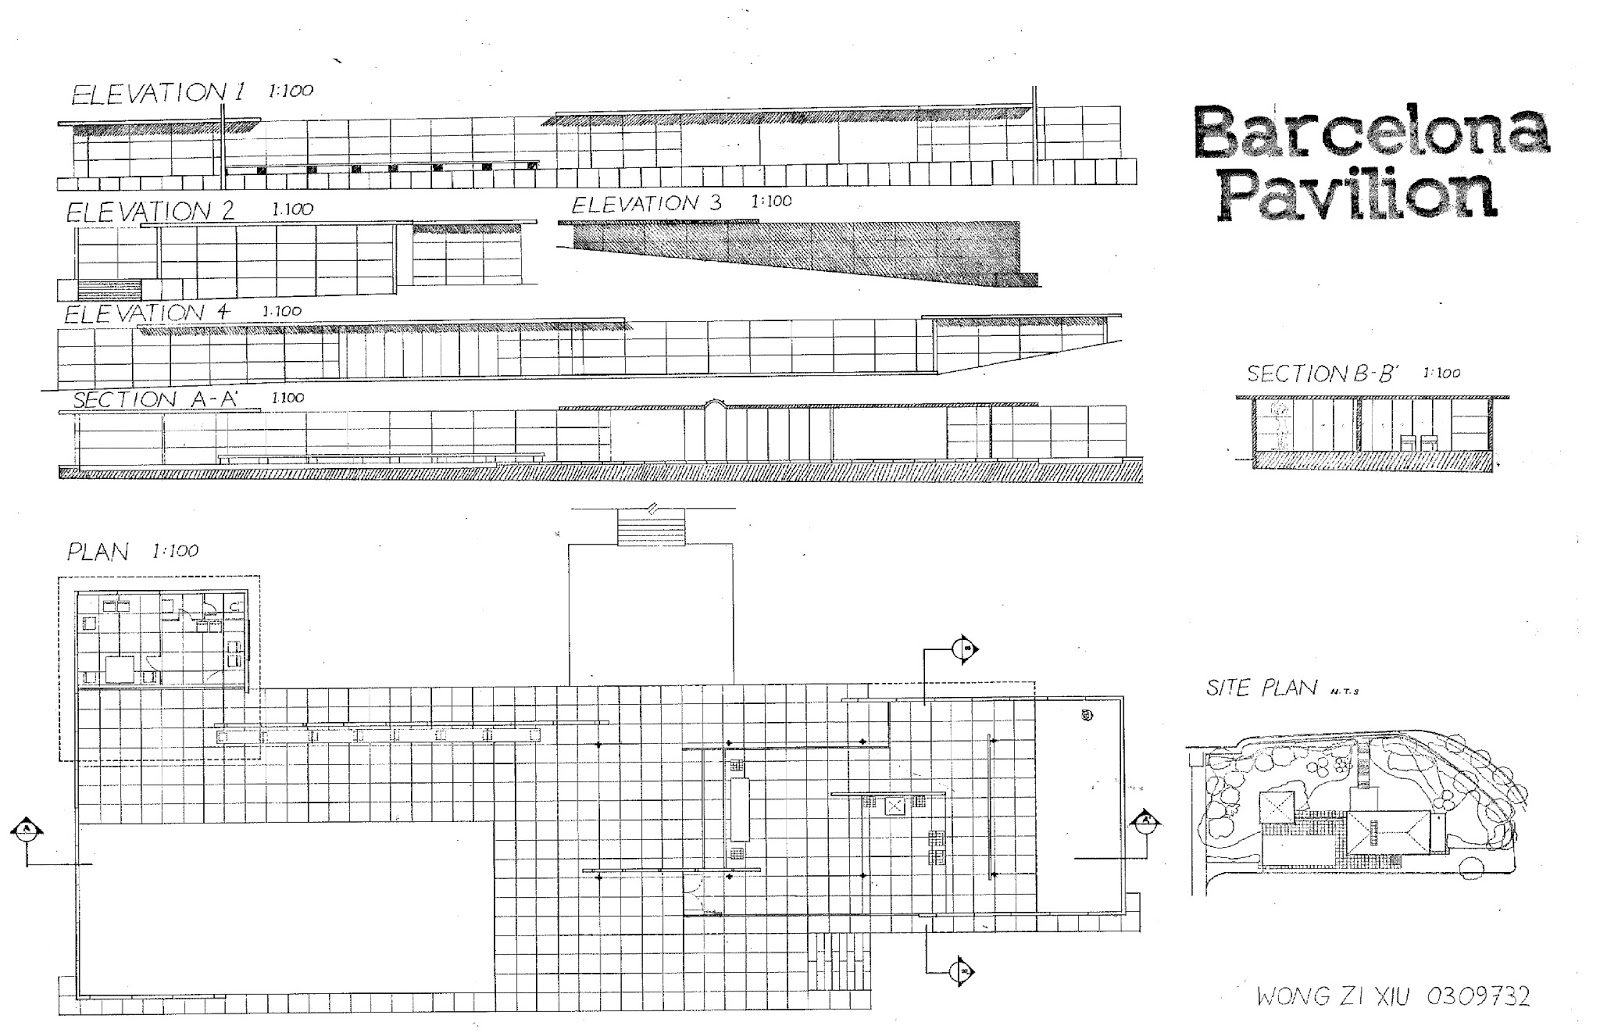 Barcelona pavilion section drawing - Orthographic Drawings Of Barcelona Pavilion